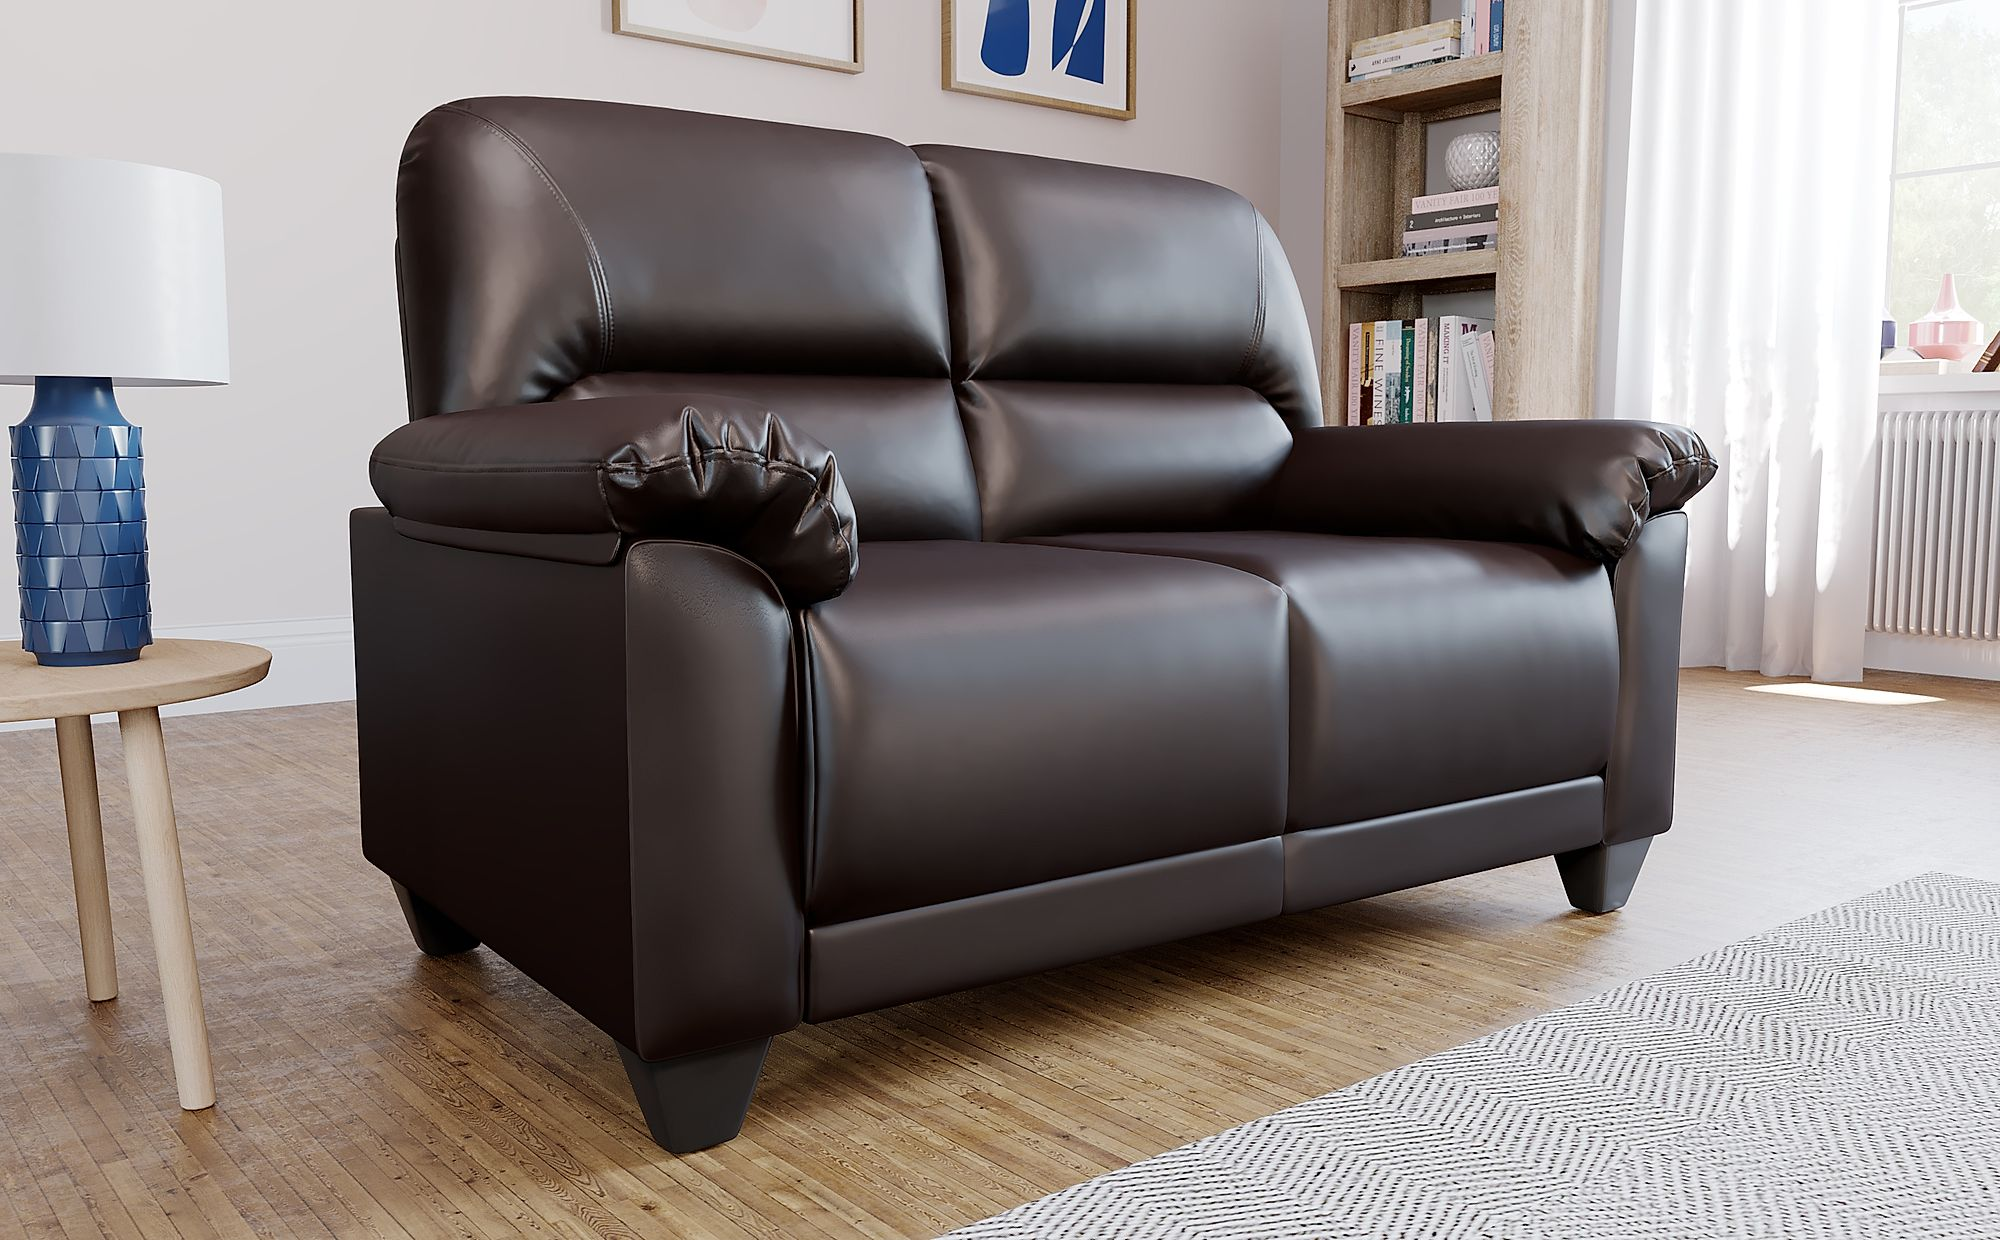 Kenton Small Brown Leather 2 Seater Sofa Furniture Choice